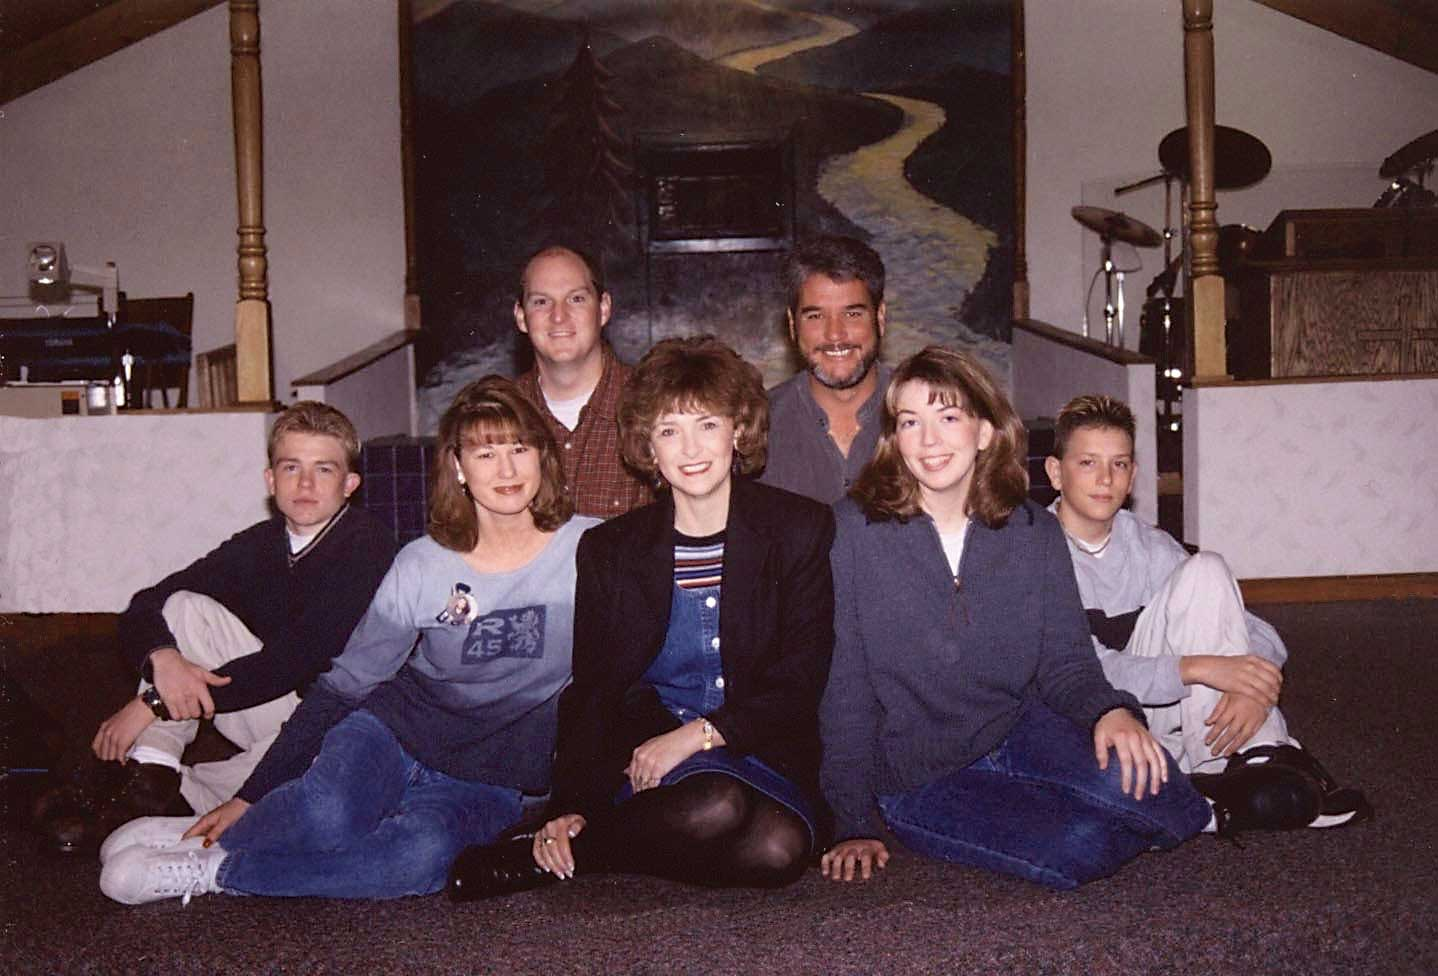 Beth Nimmo with her kids and their spouses: (l to r: bottom row) Craig Scott, Bethanee McCand- less, Beth, Dana Scott, Mike Scott. (l to r: top row) Don McCandless and Larry Nimmo.